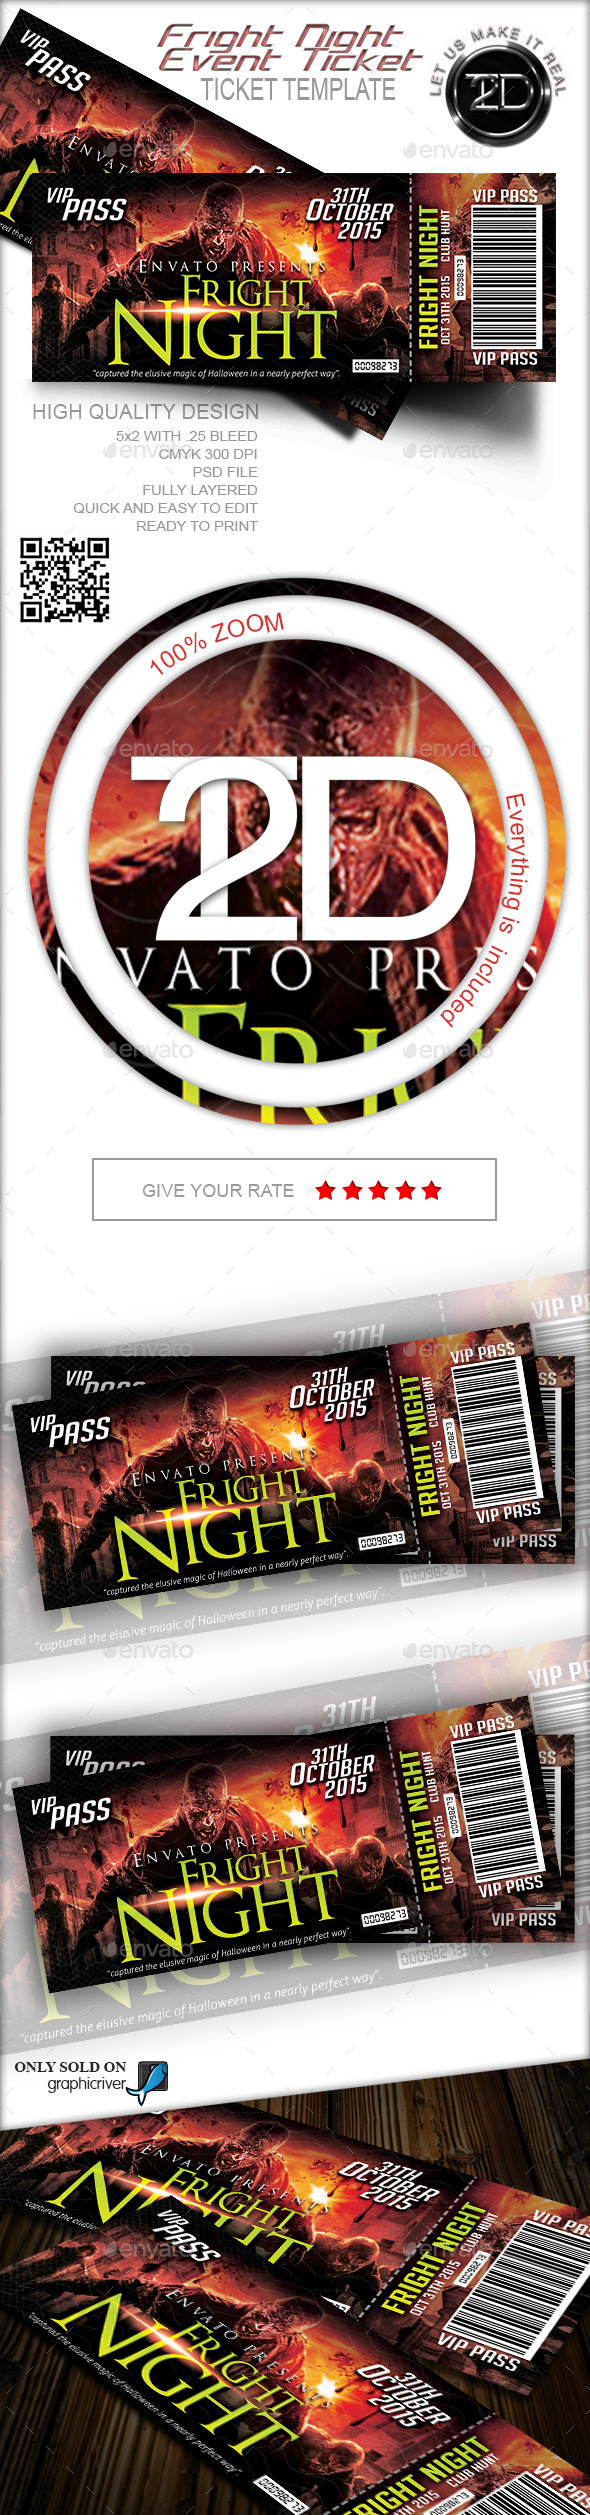 Fright Night Print Ready Event Ticket